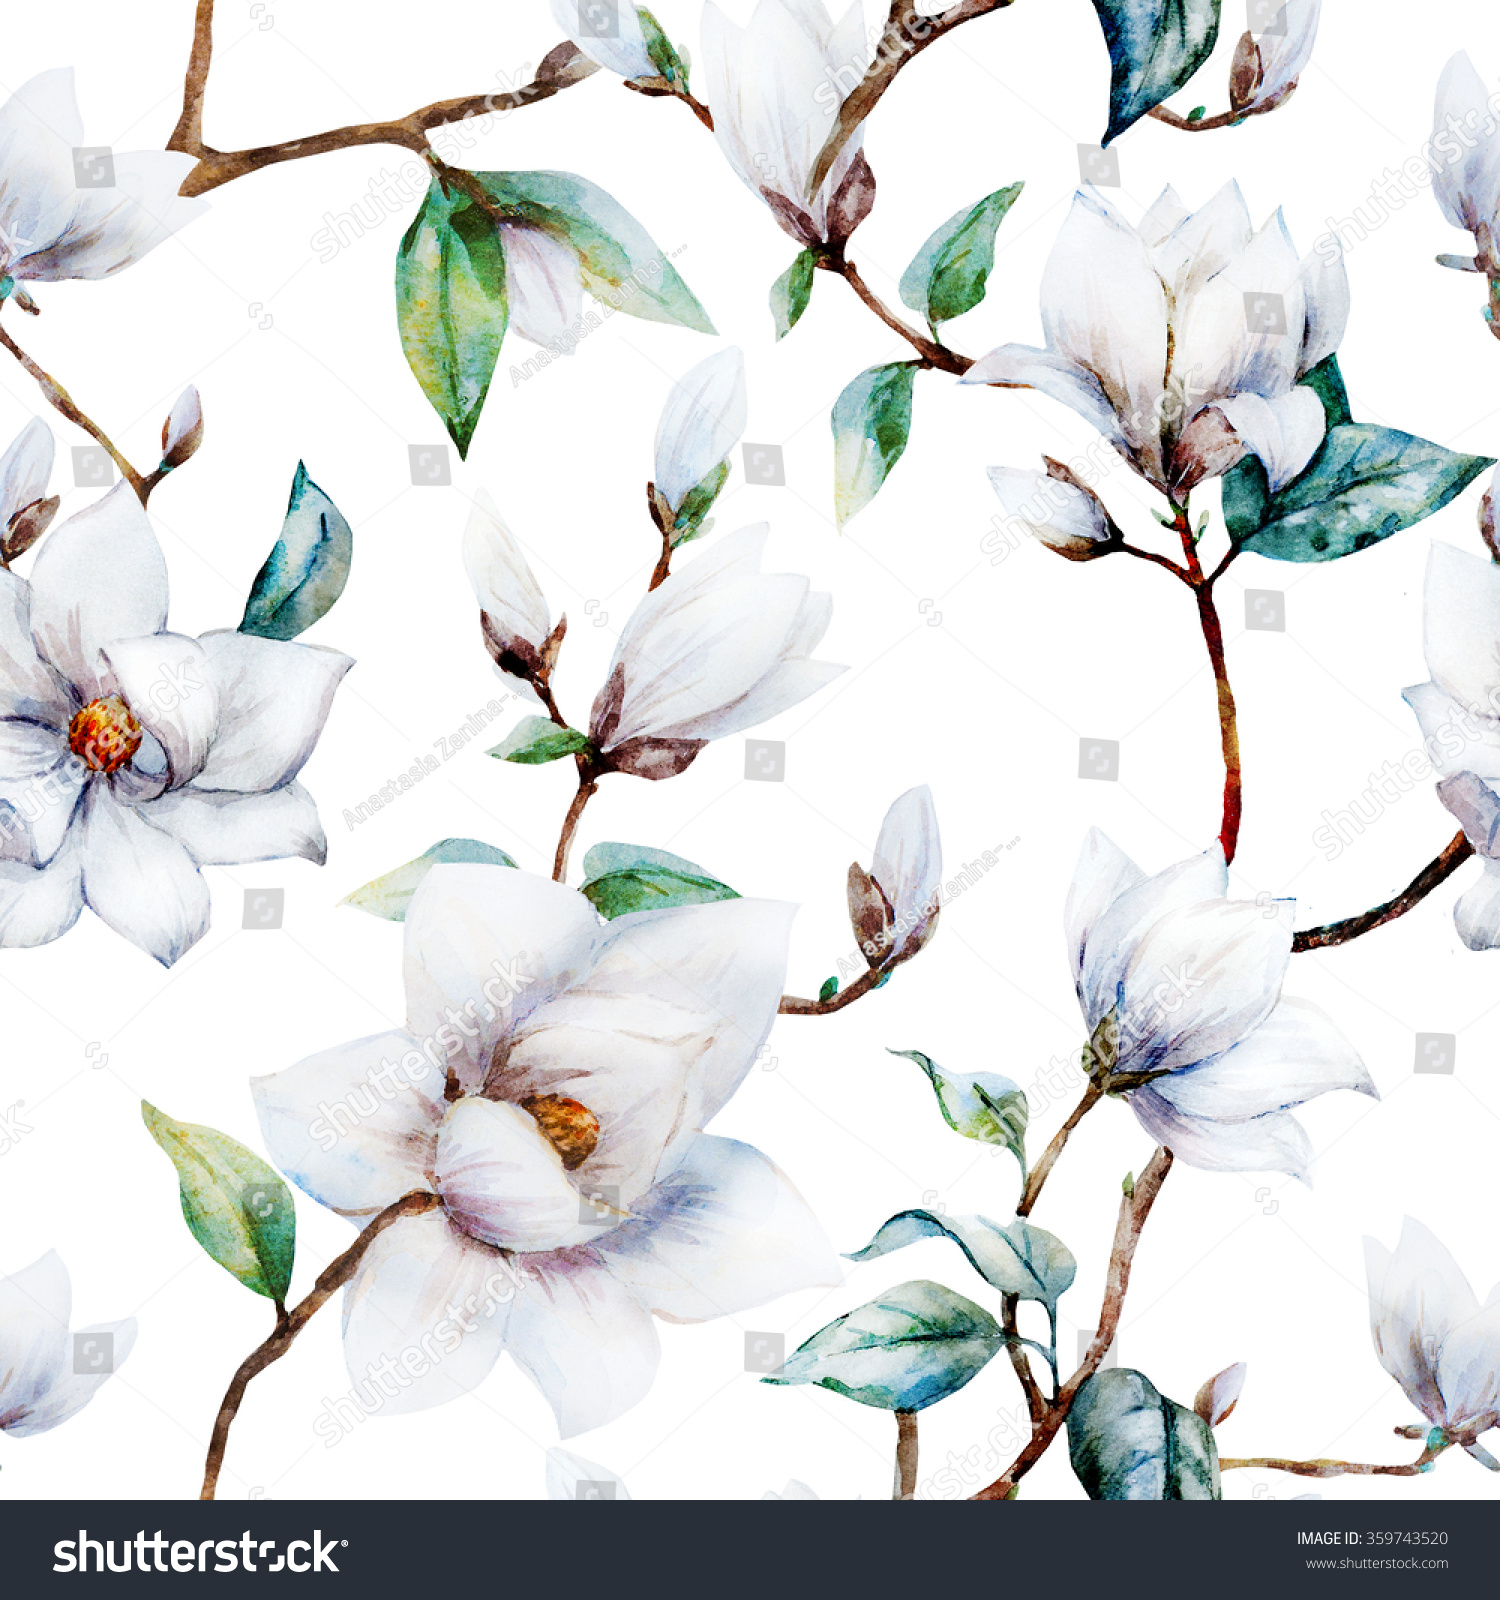 Royalty Free Watercolor Pattern Magnolia Flowers 359743520 Stock